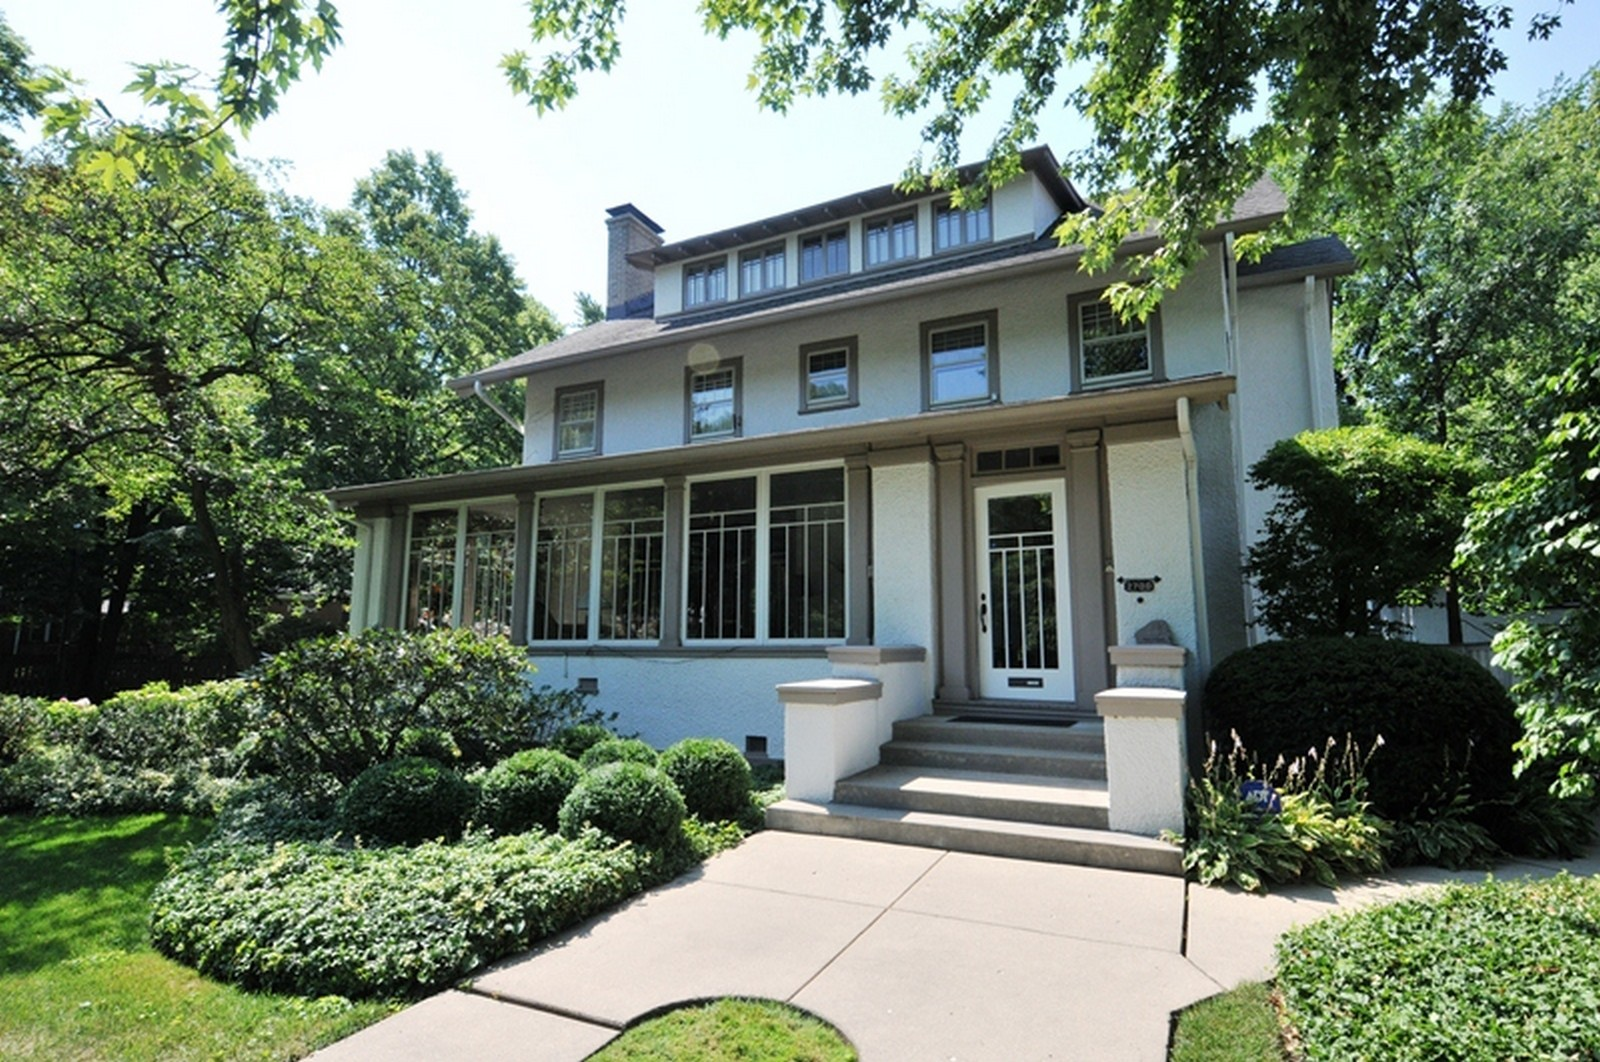 Real Estate Photography - 2700 Lincoln St, Evanston, IL, 60201 - Front View 2